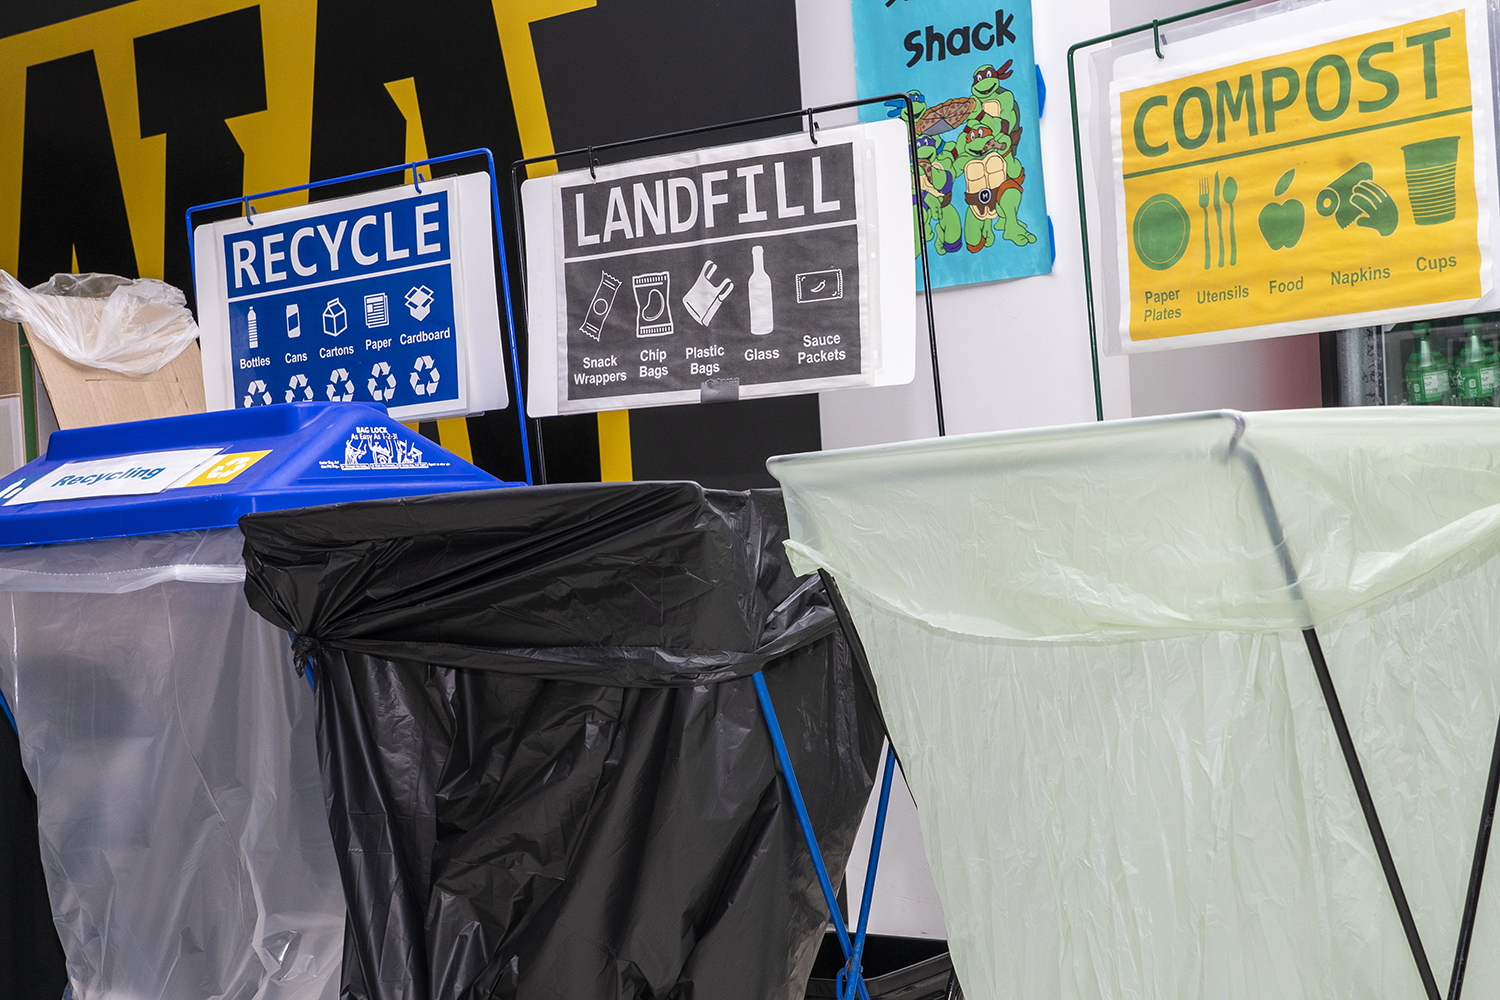 Composite, Landfill, and Recycling bins were placed outside the Food Court inside the IMU during The Dance Marathon. The event took place in the IMU from Friday, February 7 to Saturday, February 8 of 2020.